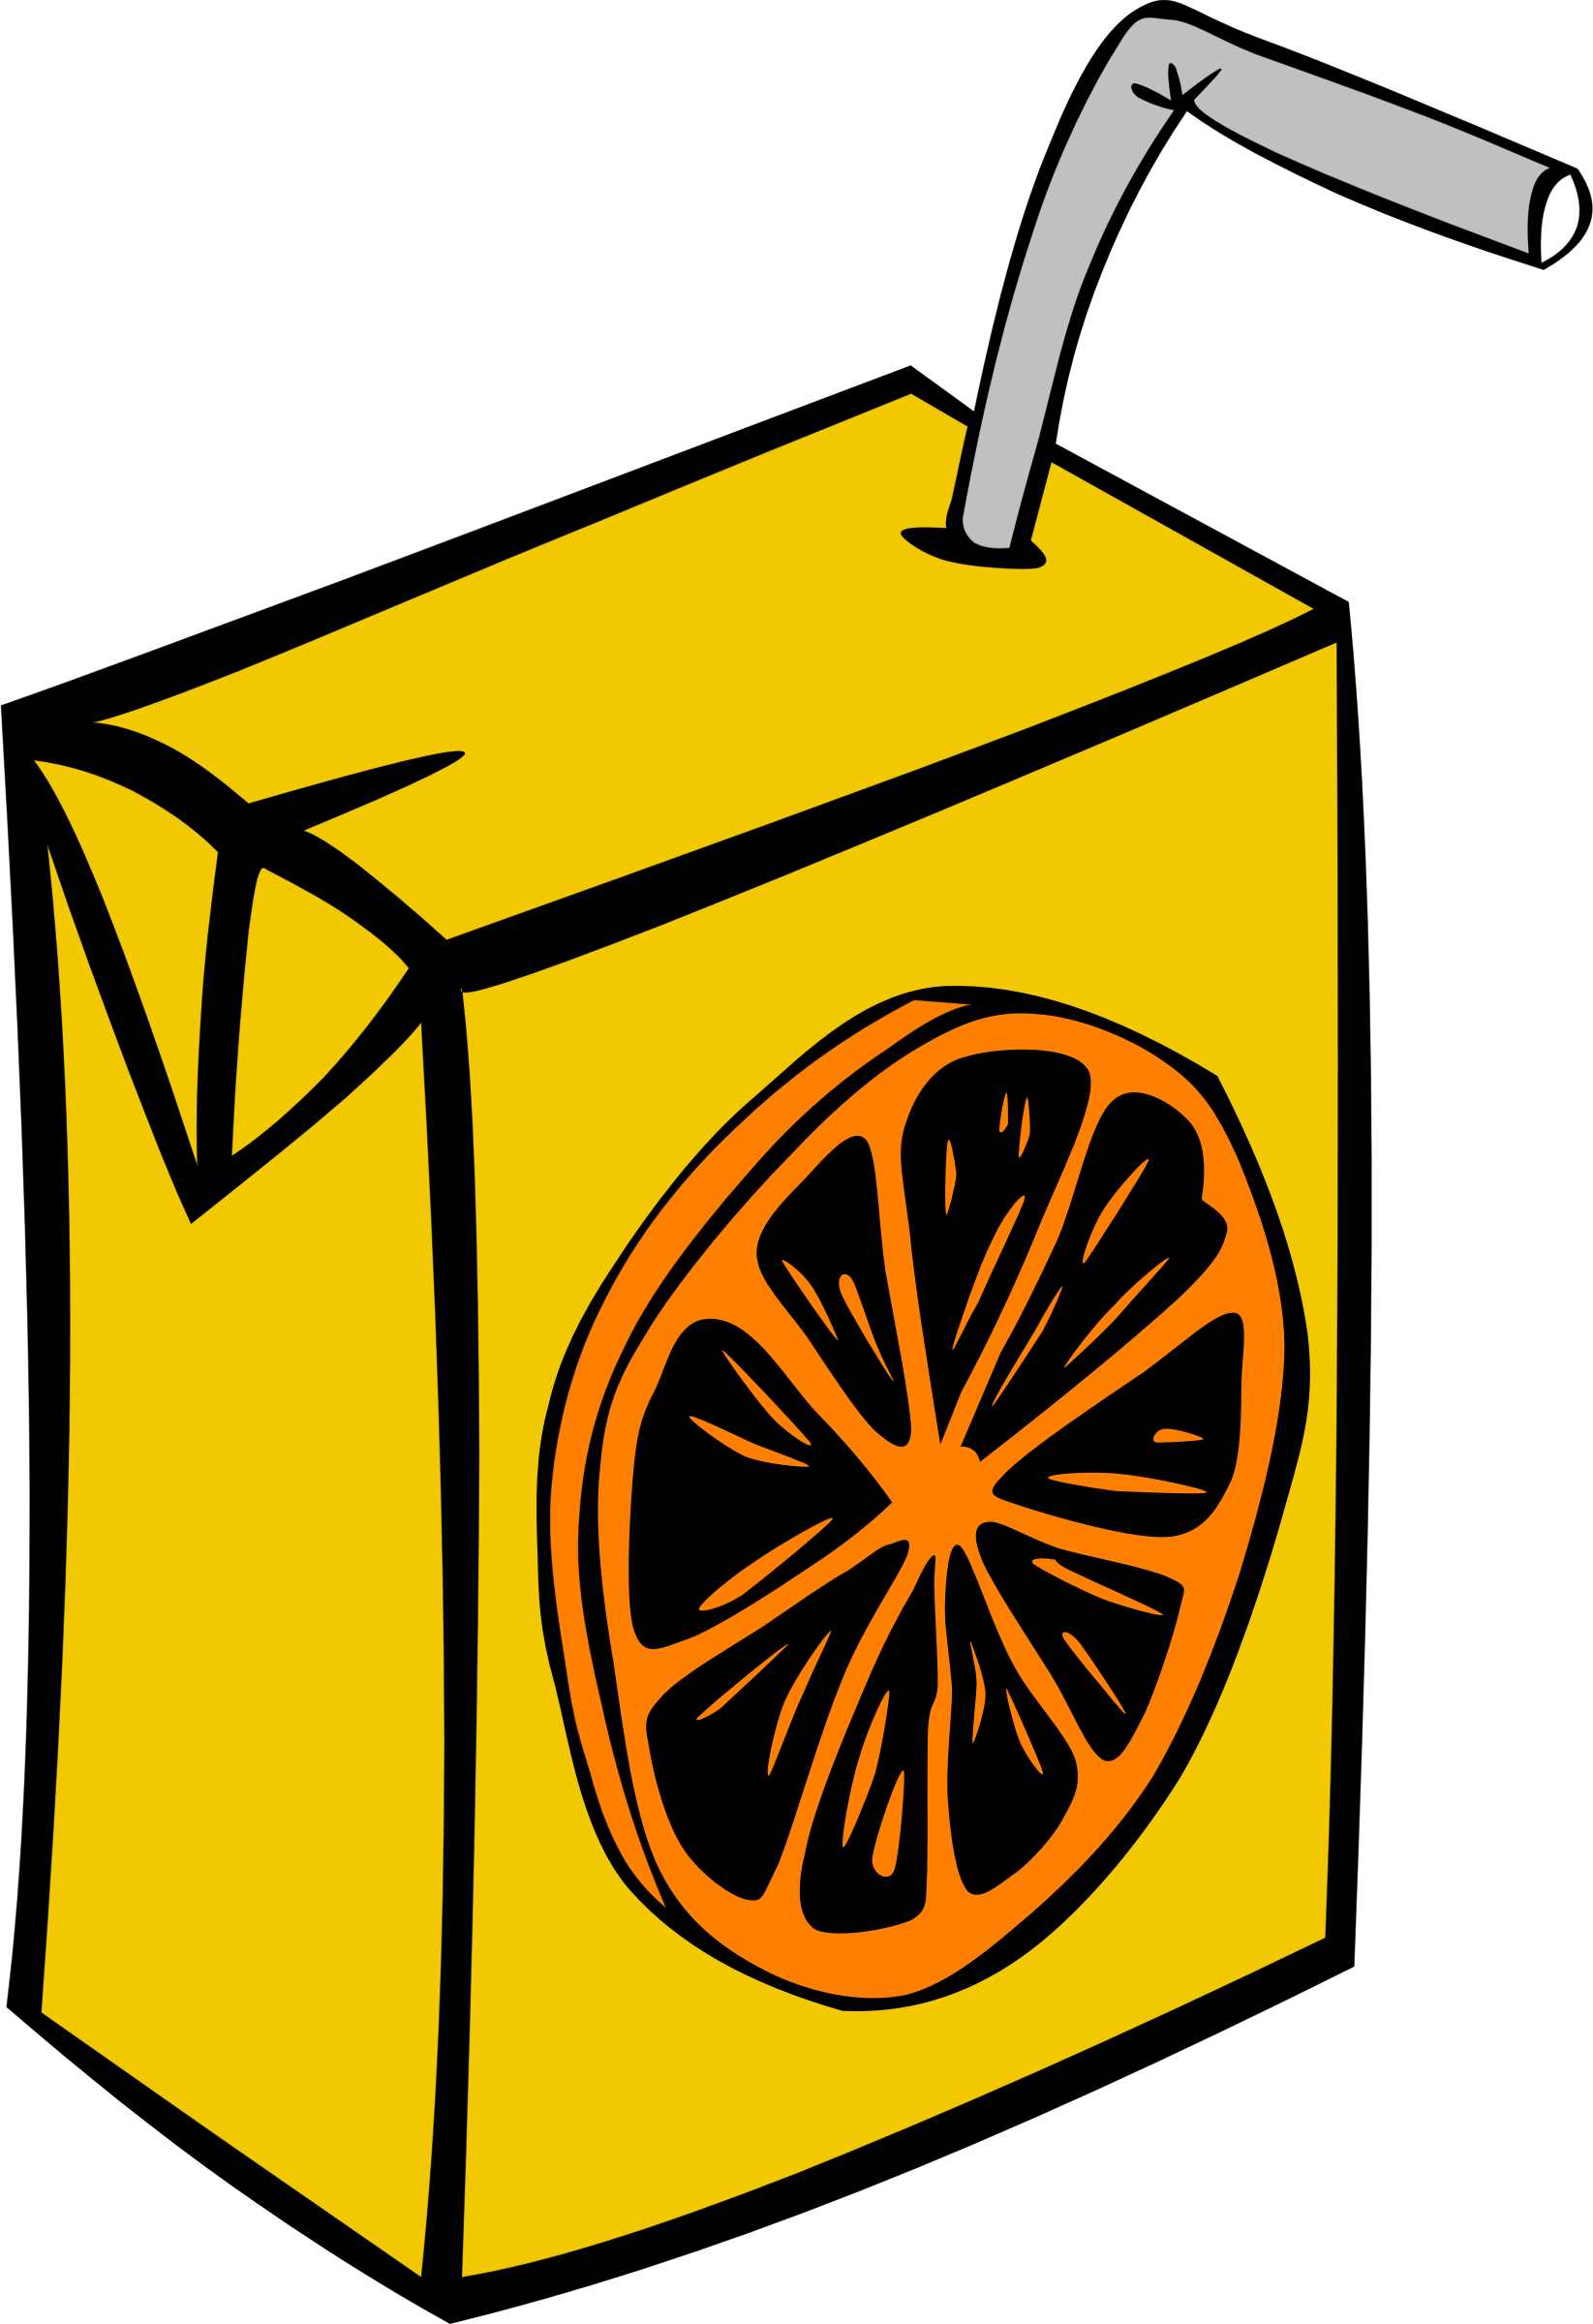 Clipart fast food drinks juice orange.